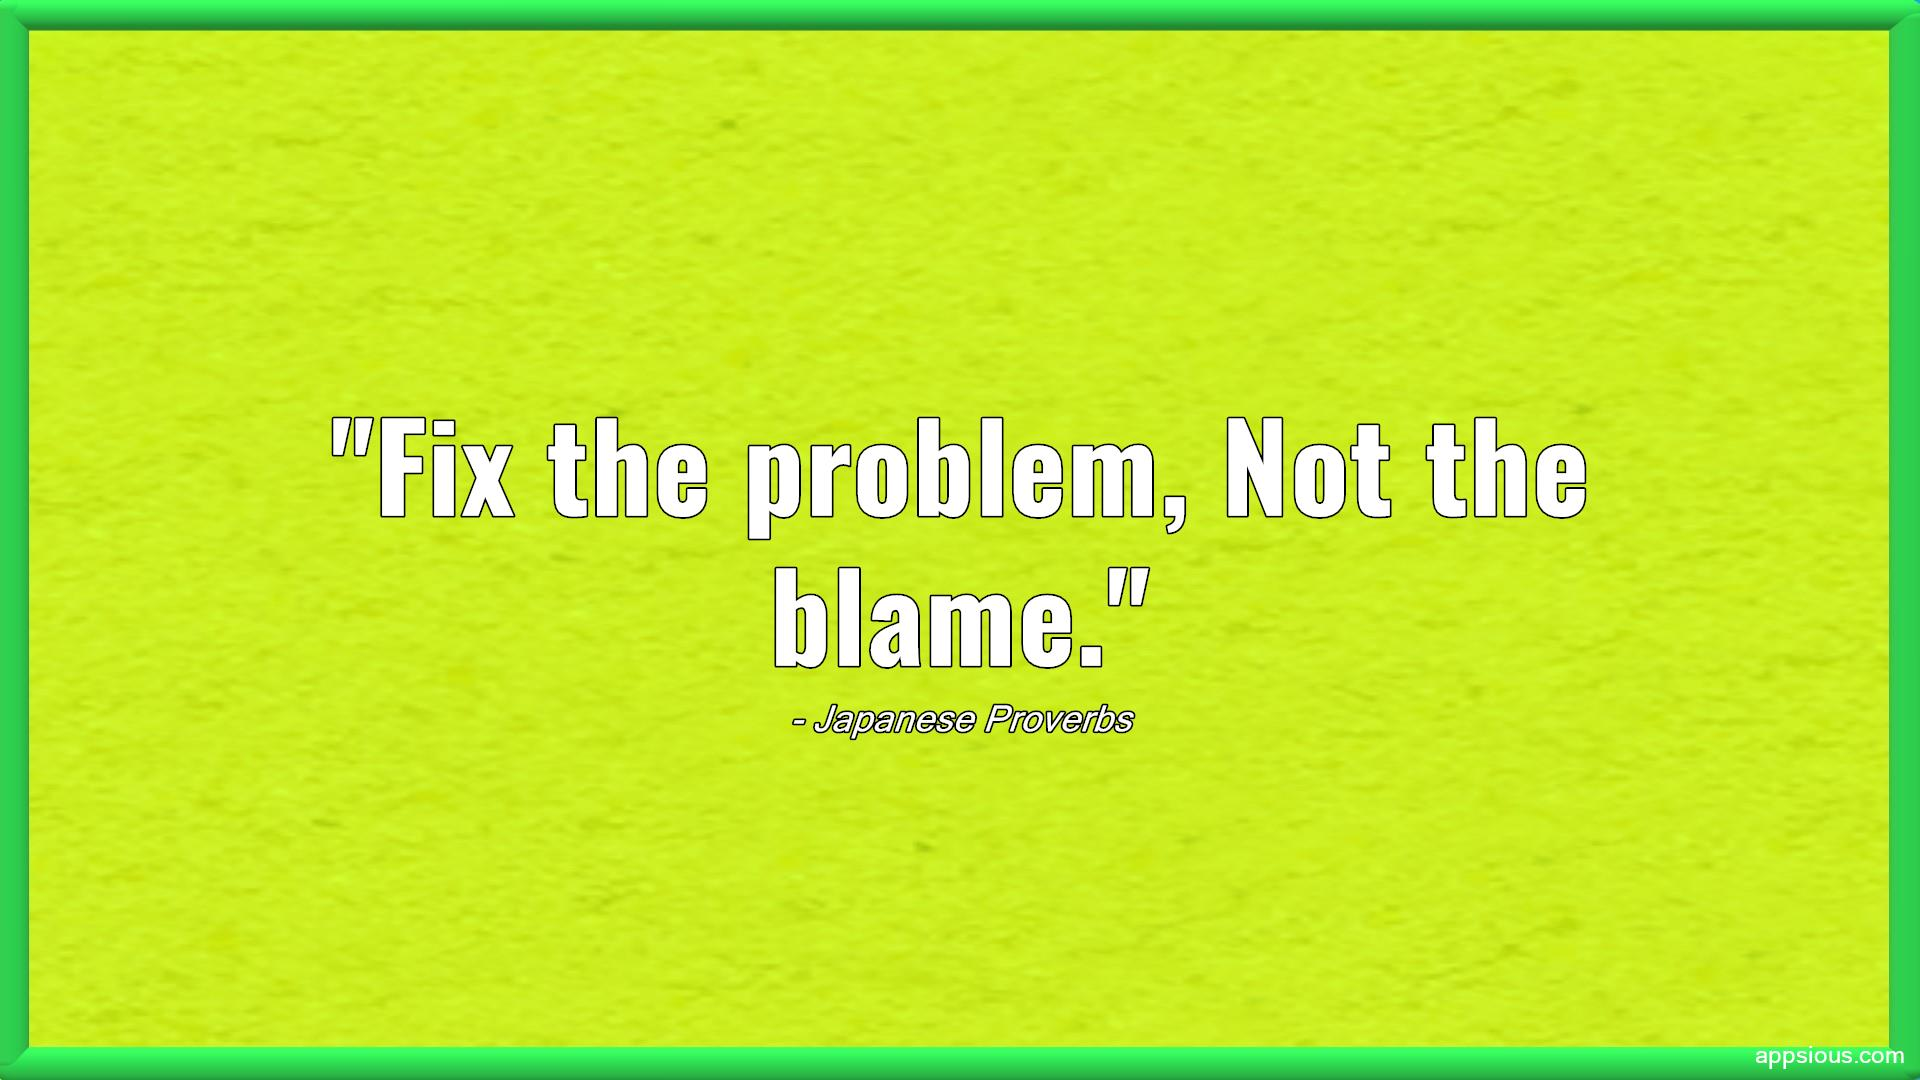 Fix the problem, Not the blame.